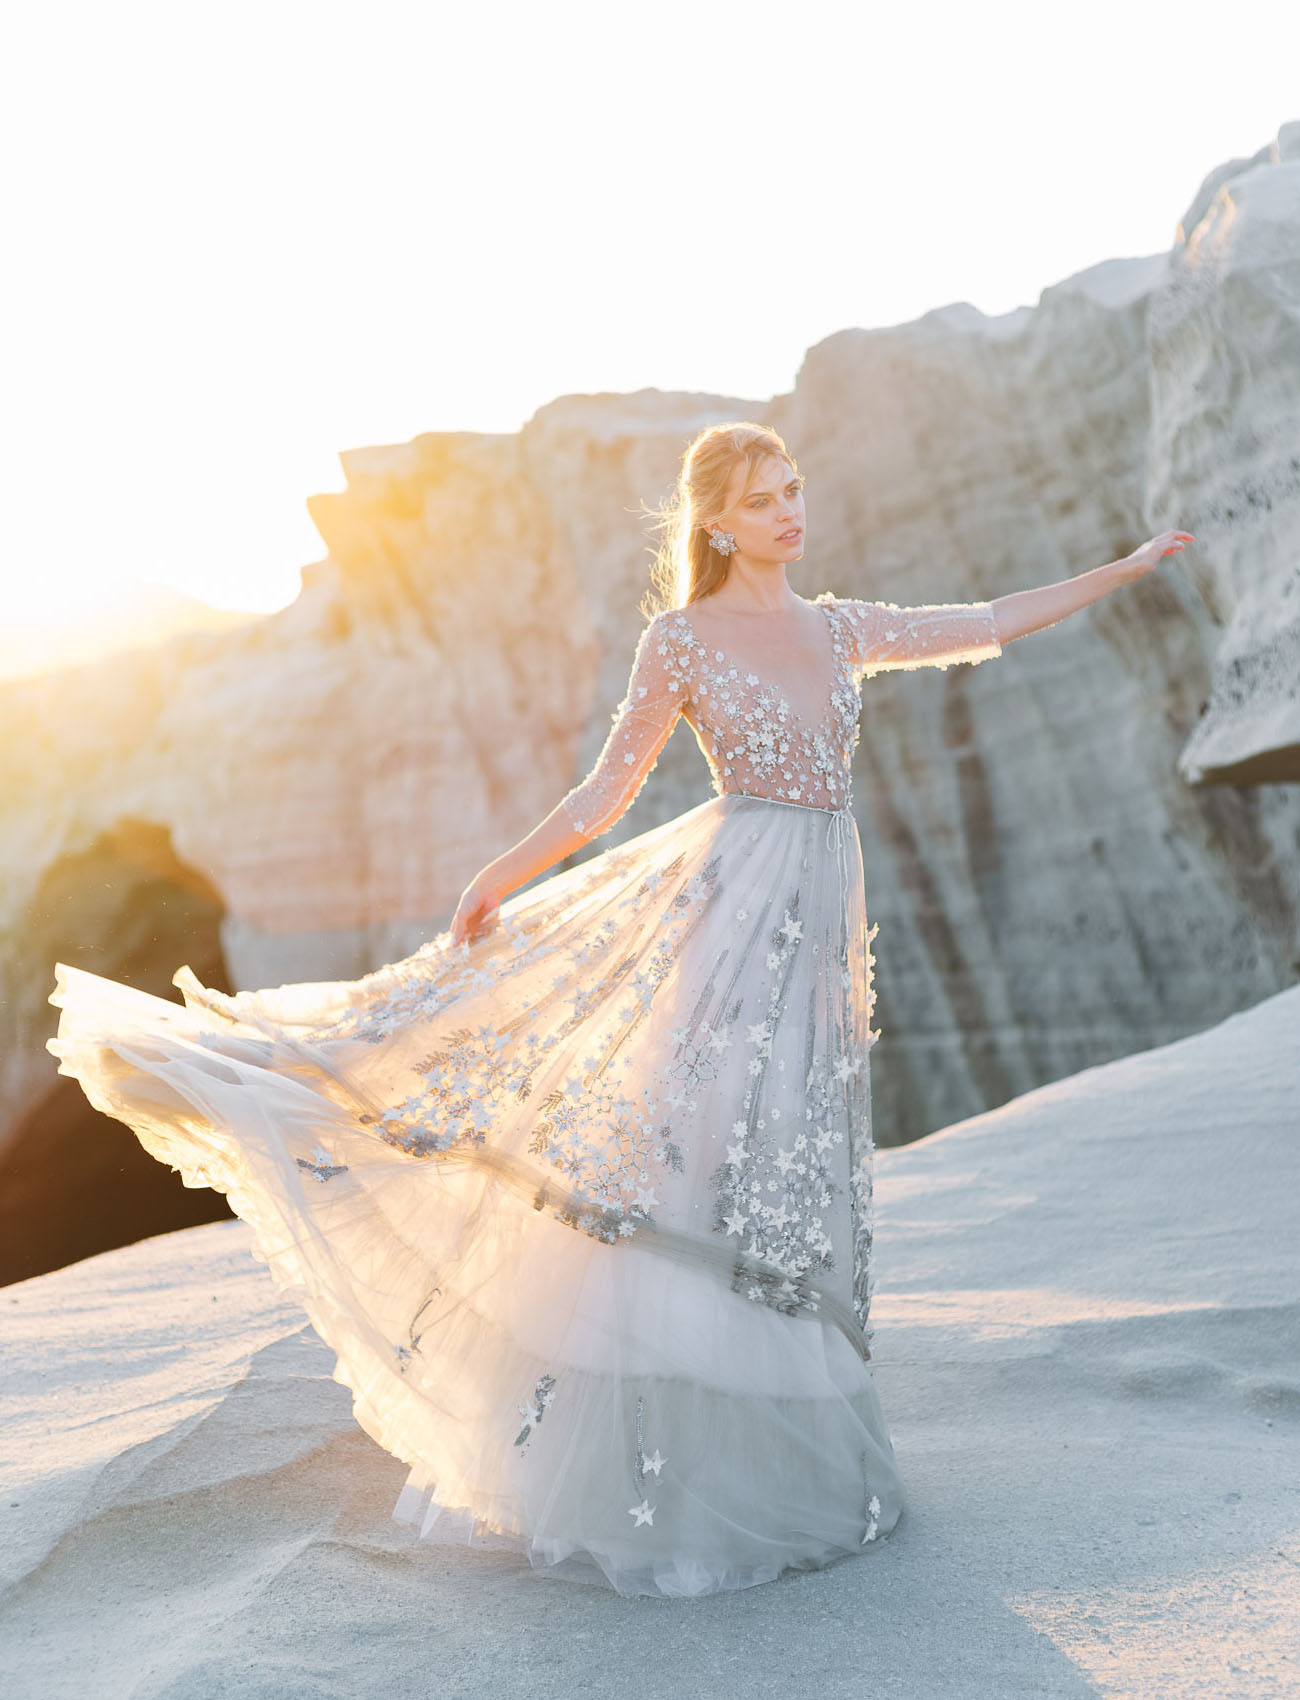 The jaw dropping wedding dress was with a star bodice and a layered skirt also decorated with stars